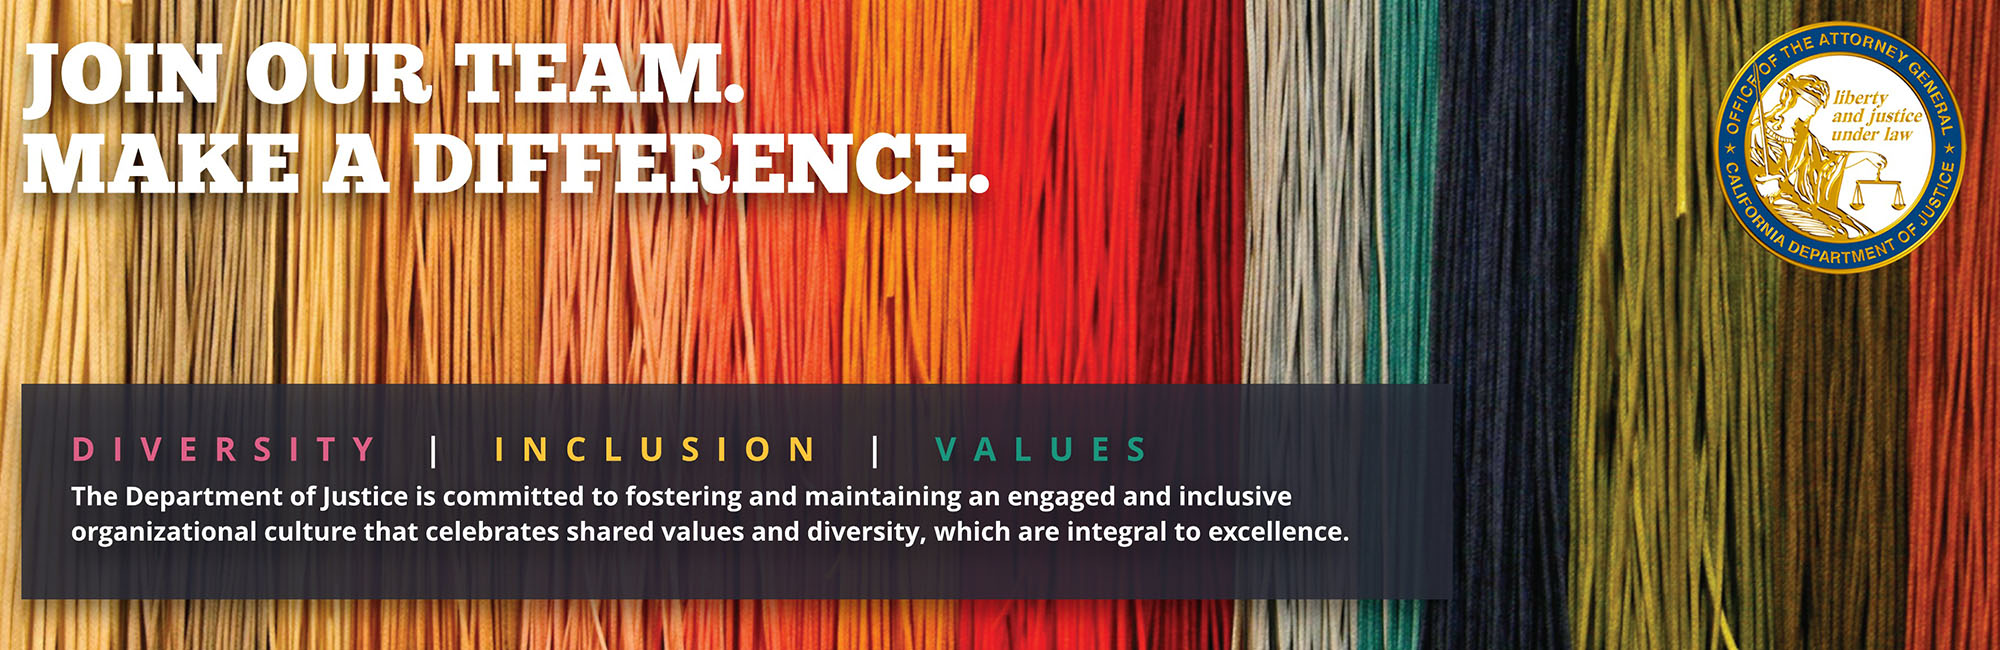 The Department of Justice is committed to fostering and maintaining an engaged and inclusive organizational culture that celebrates shared values and diversity, which are integral to excellence.